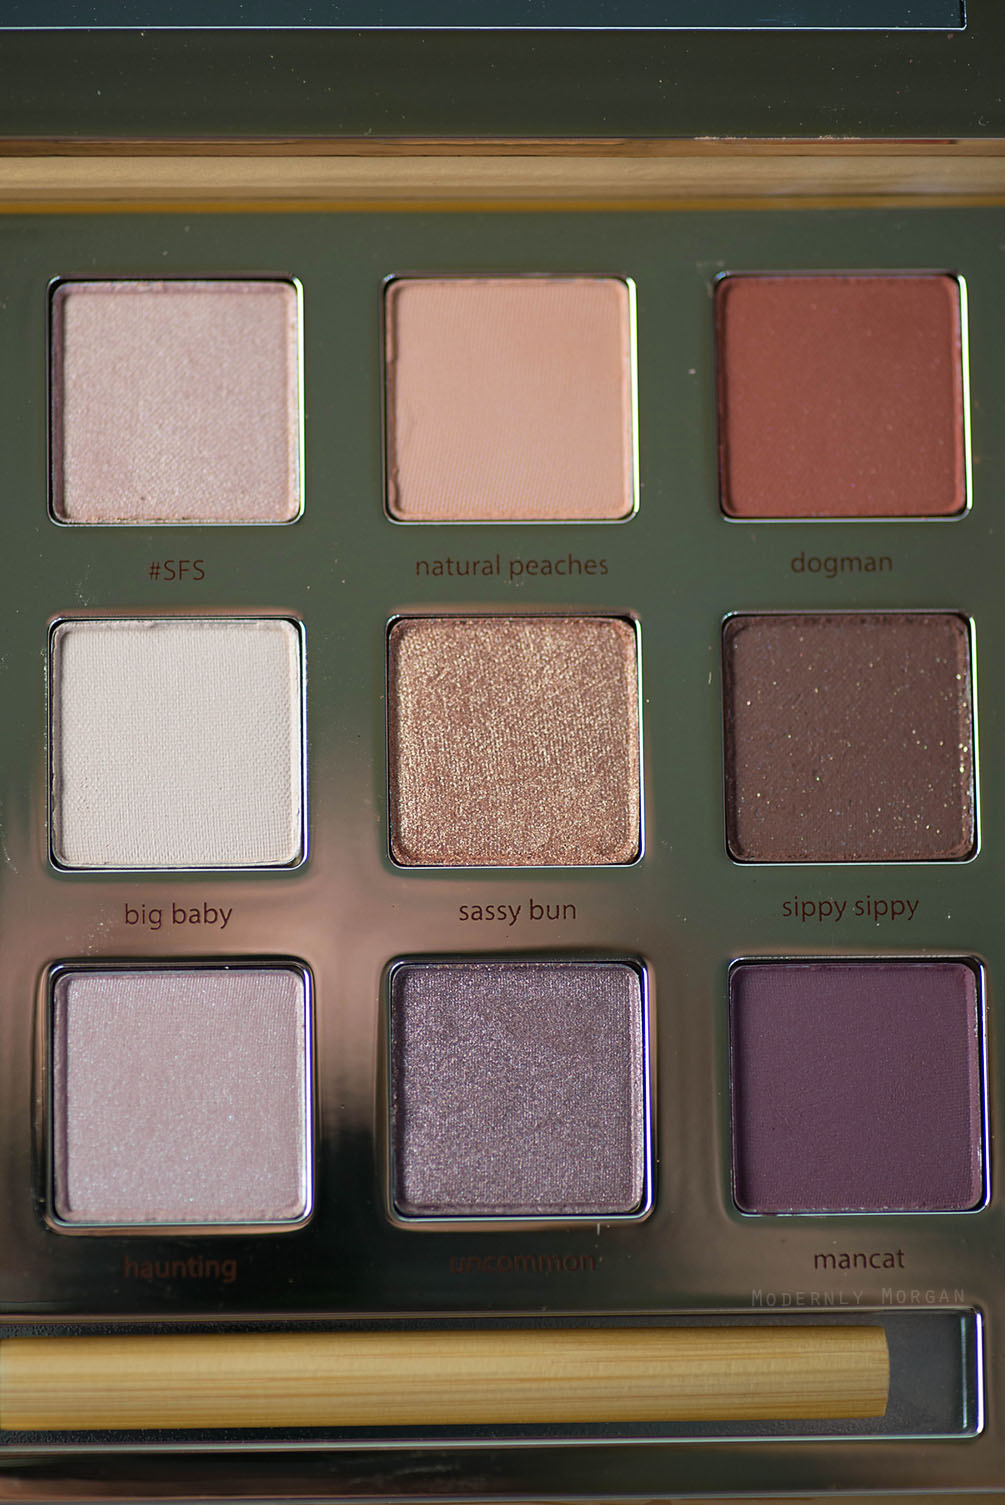 Tarte Swamp Queen Pallete by Grav3yardgirl - review and swatches